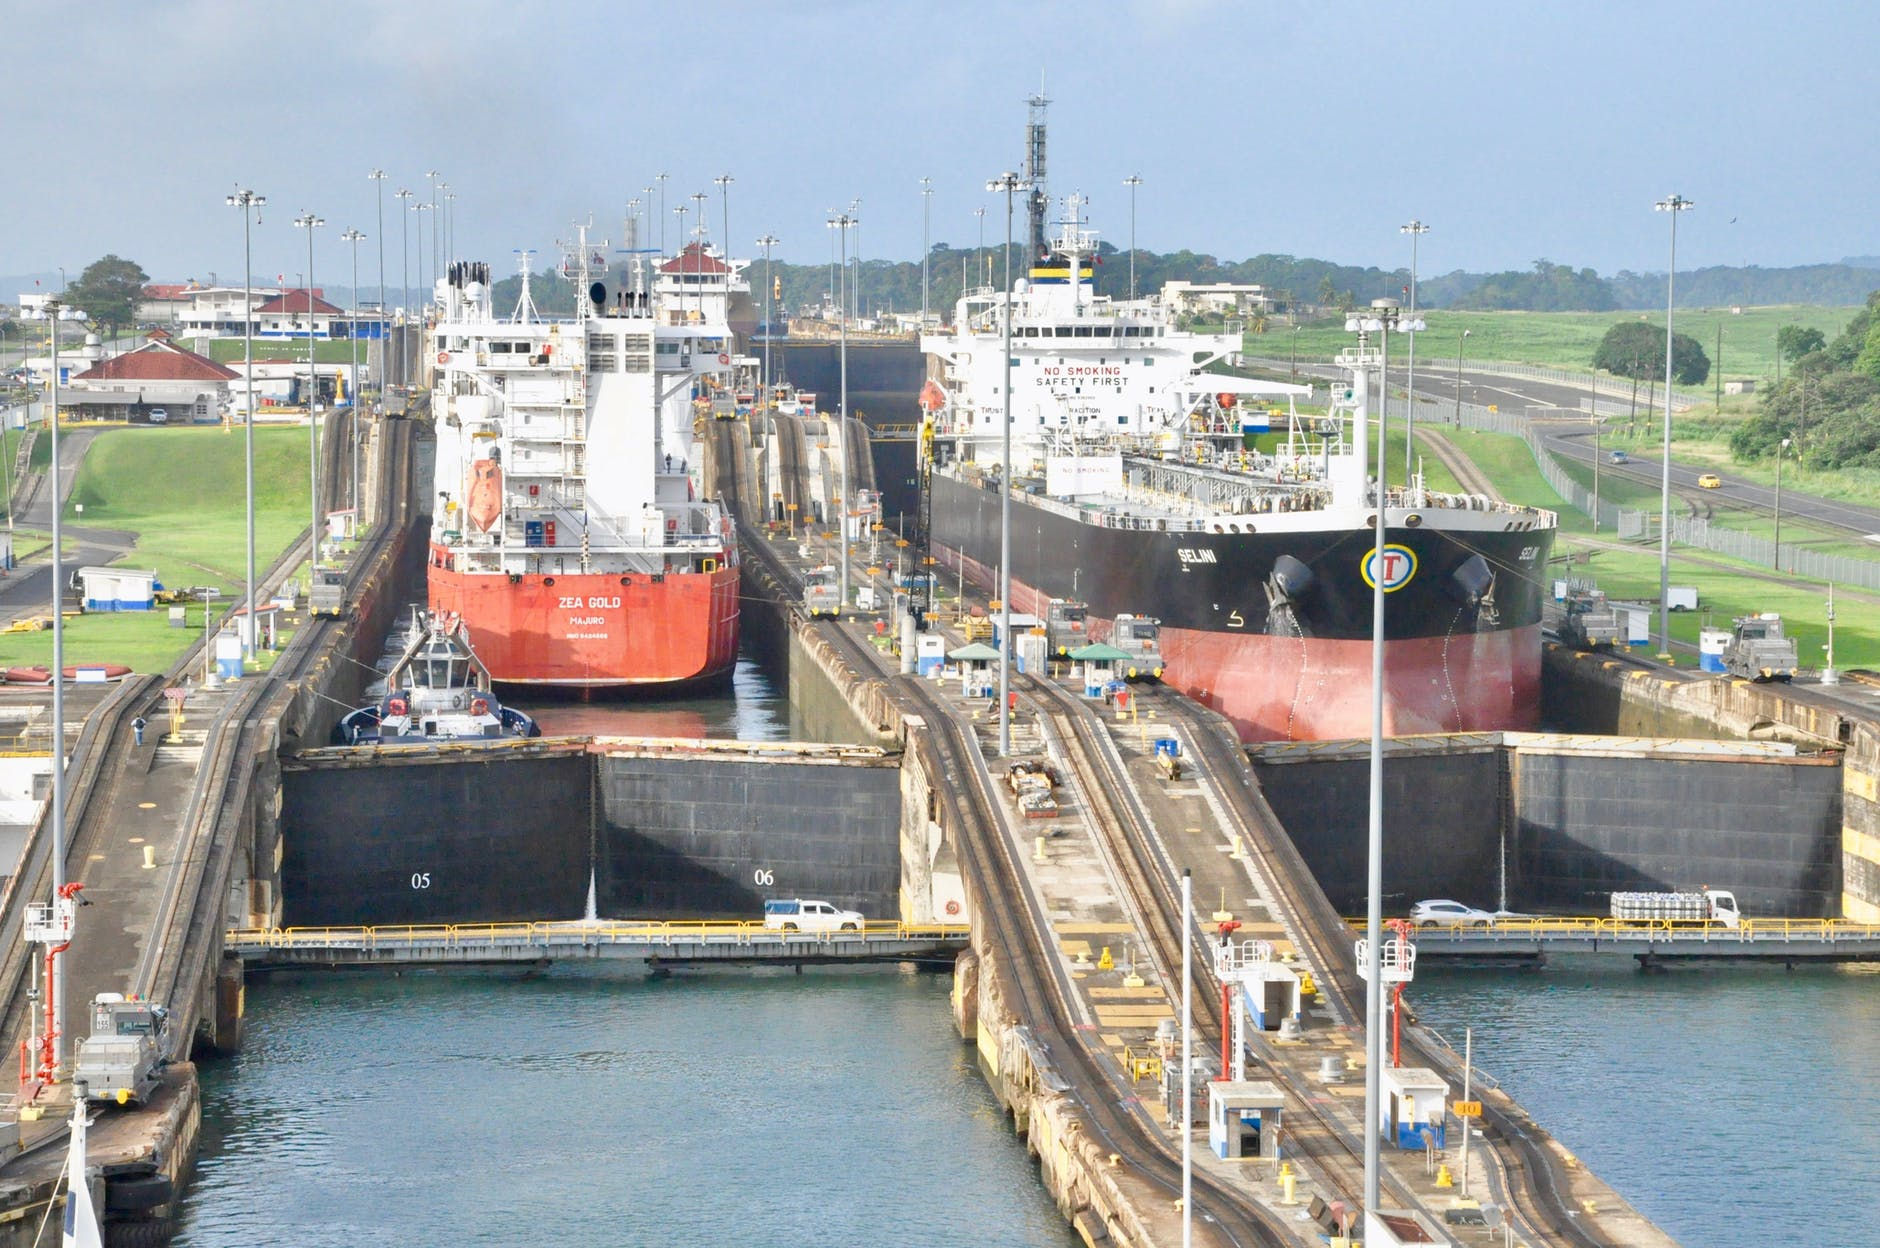 The largest ocean liners pay a $250,000 toll for each trip through the Panama Canal. The canal generates fully one-third of Panama's entire economy.